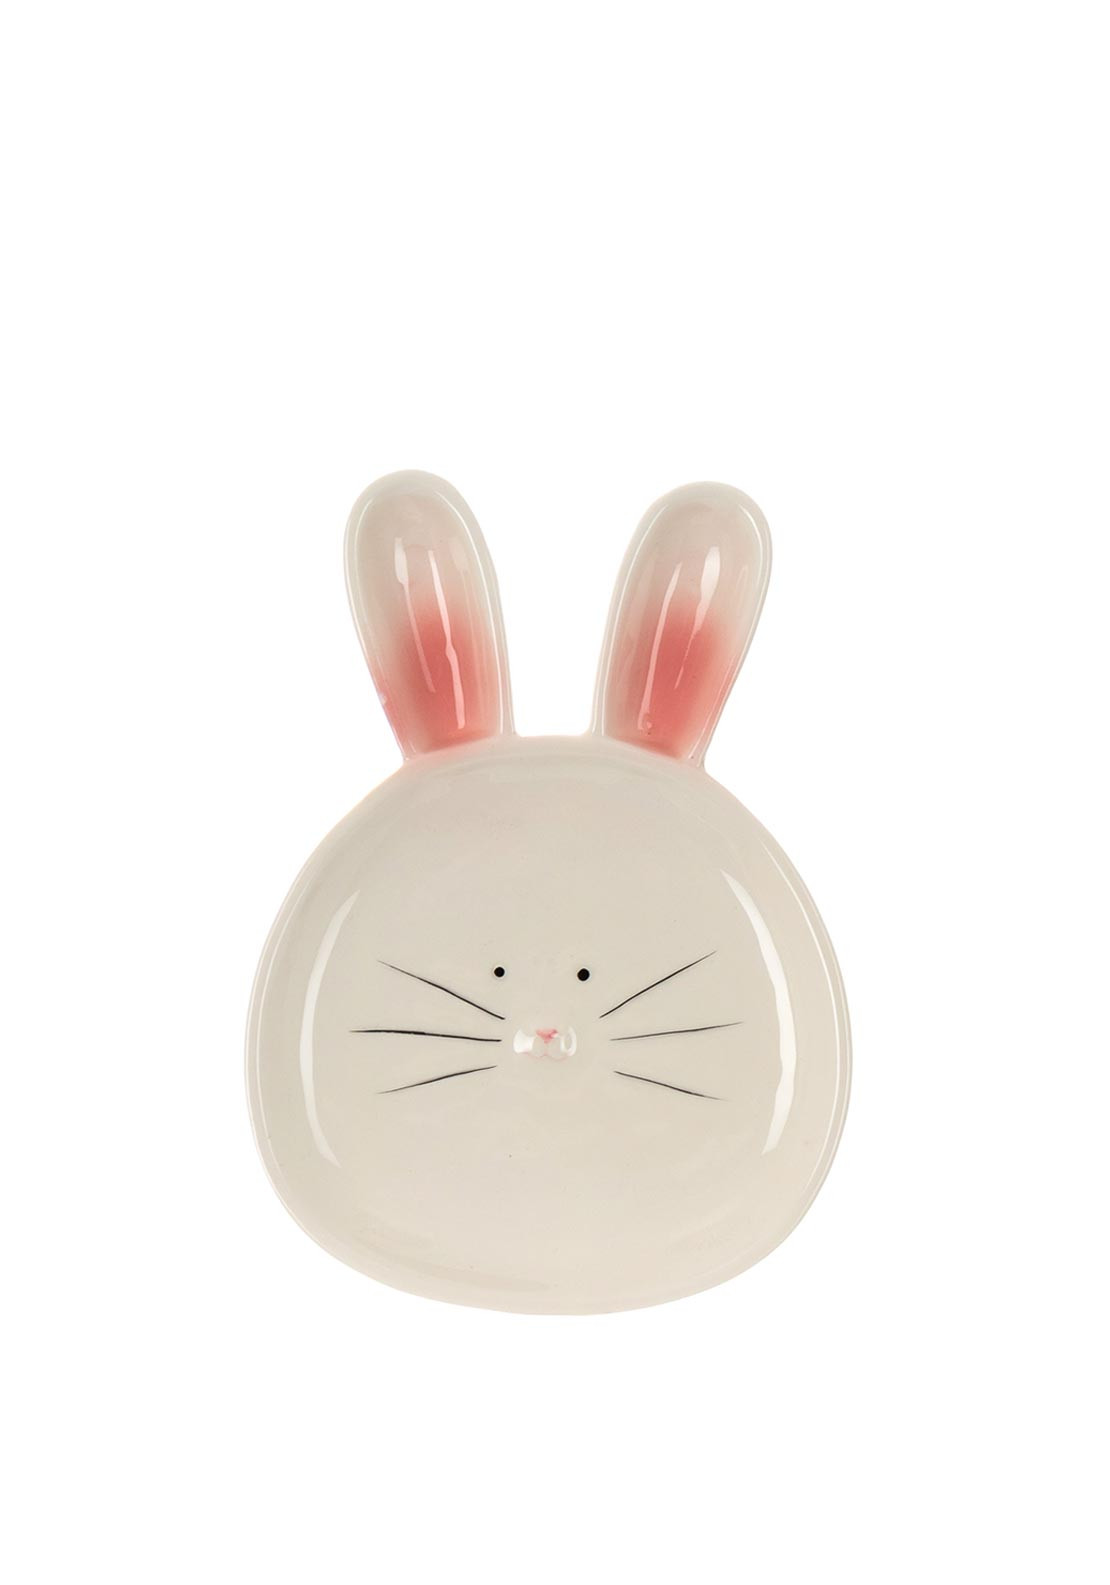 CB Imports Easter Bunny Plate, 23cm